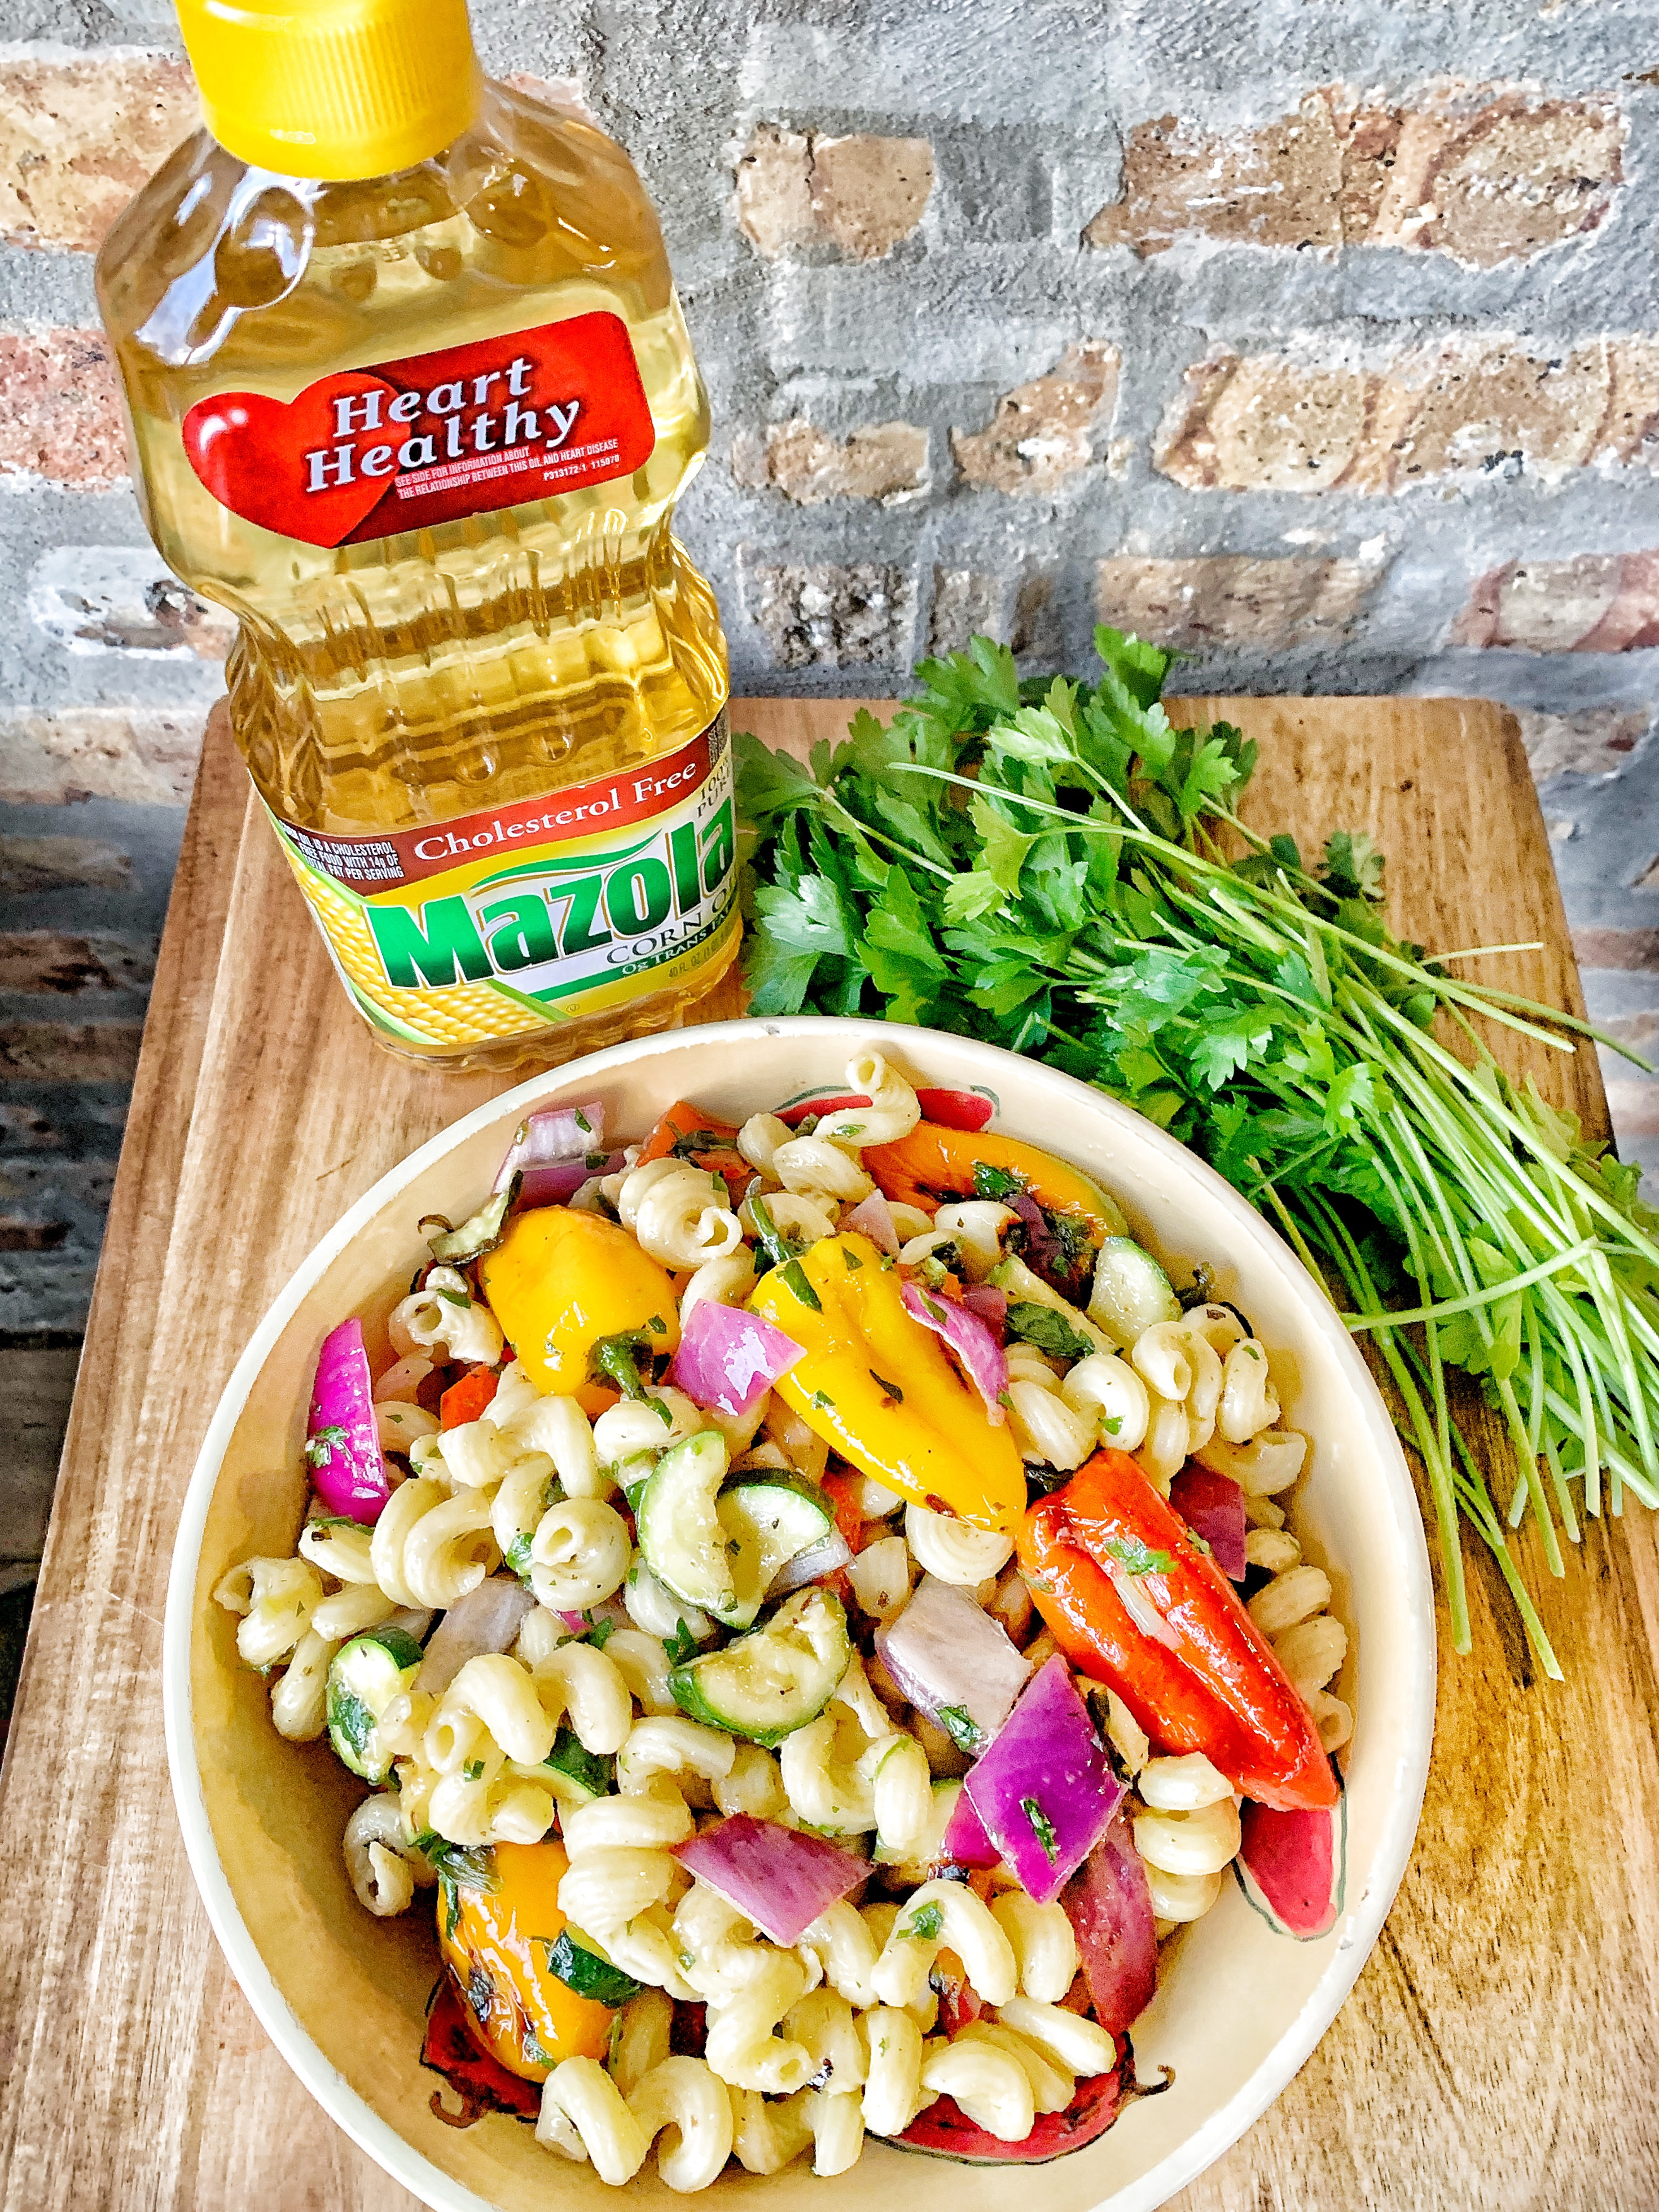 Grilled Vegetable Pasta Salad with Mazola Corn Oil - The